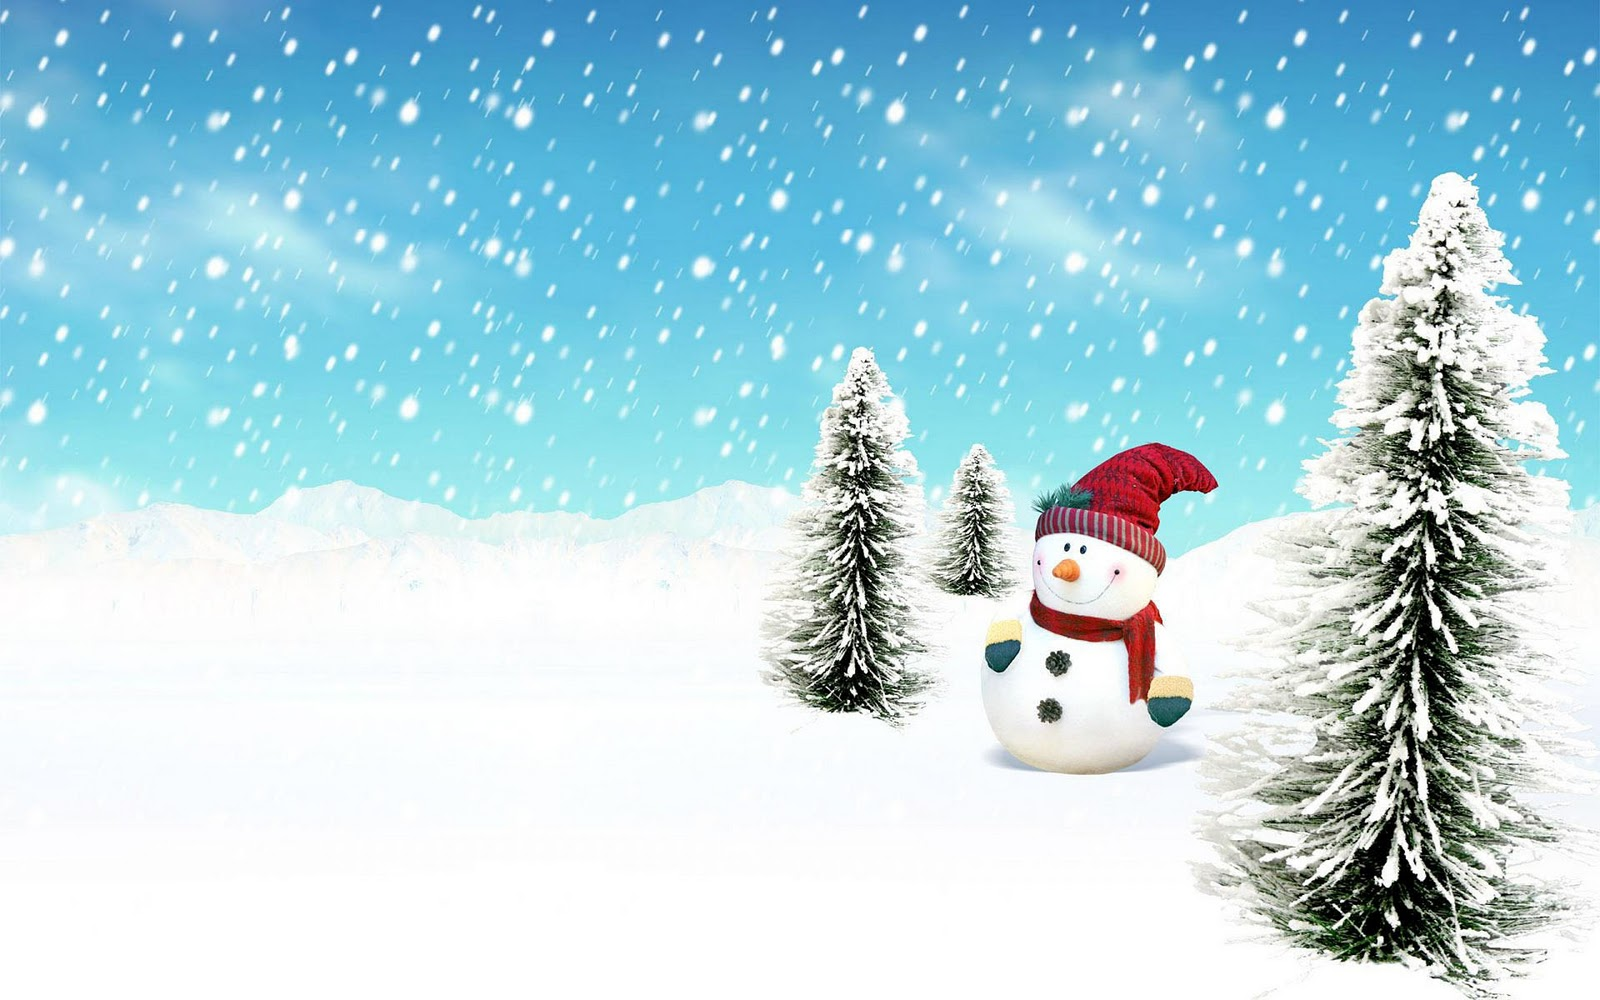 Snowman Funny Wallpaper PC